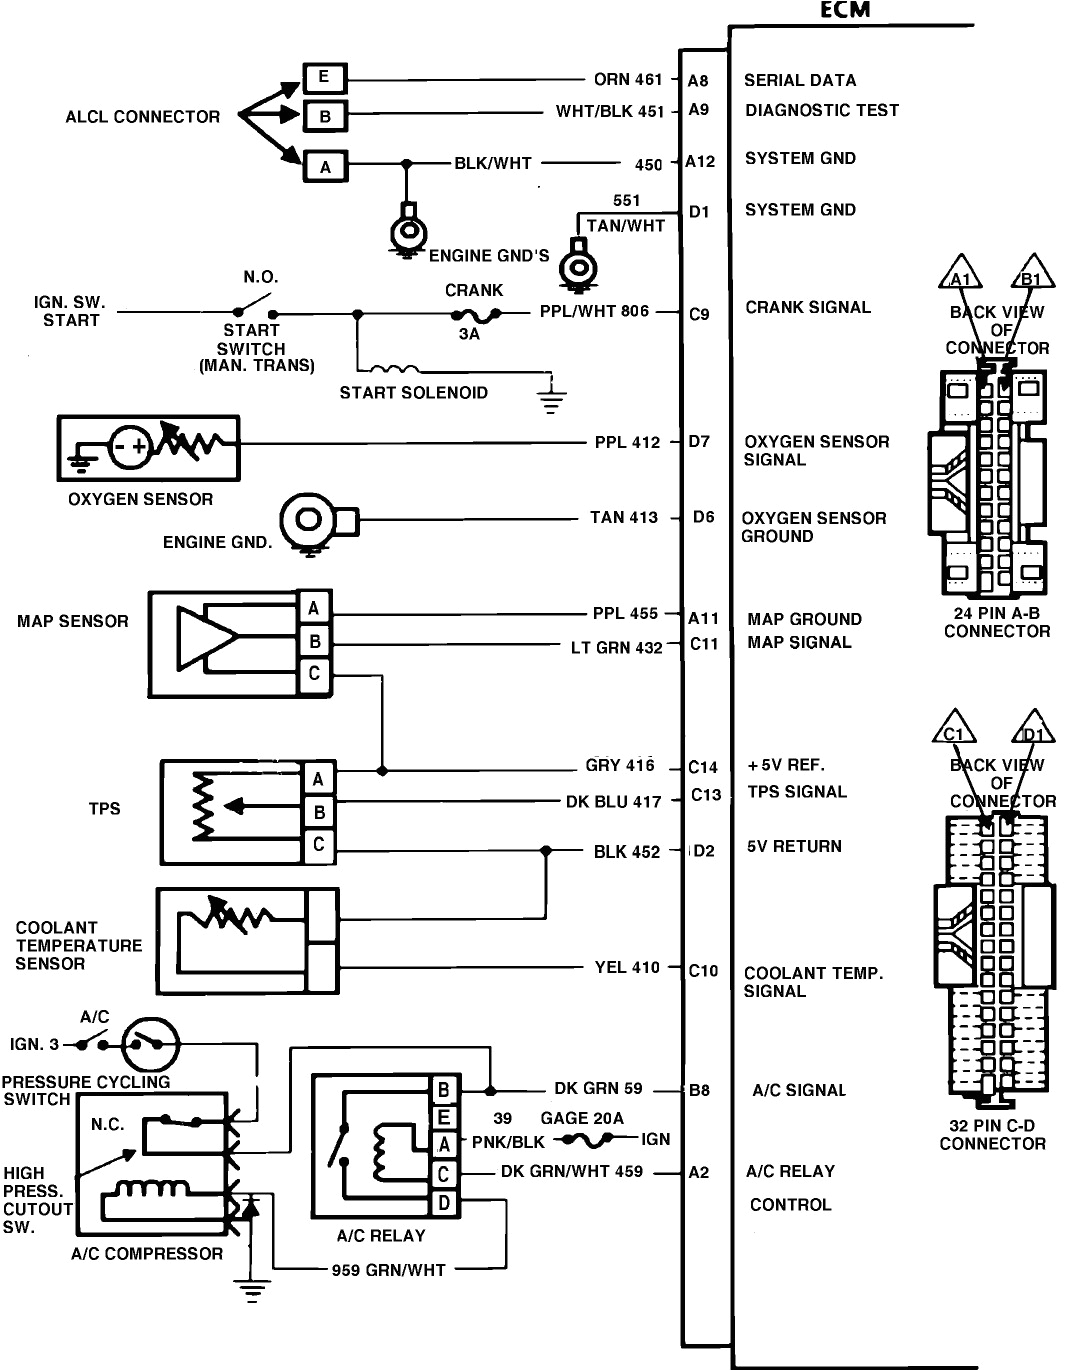 1986 s10 cb radio wiring diagram wiring diagrams schema 1986 s10 cb radio wiring diagram